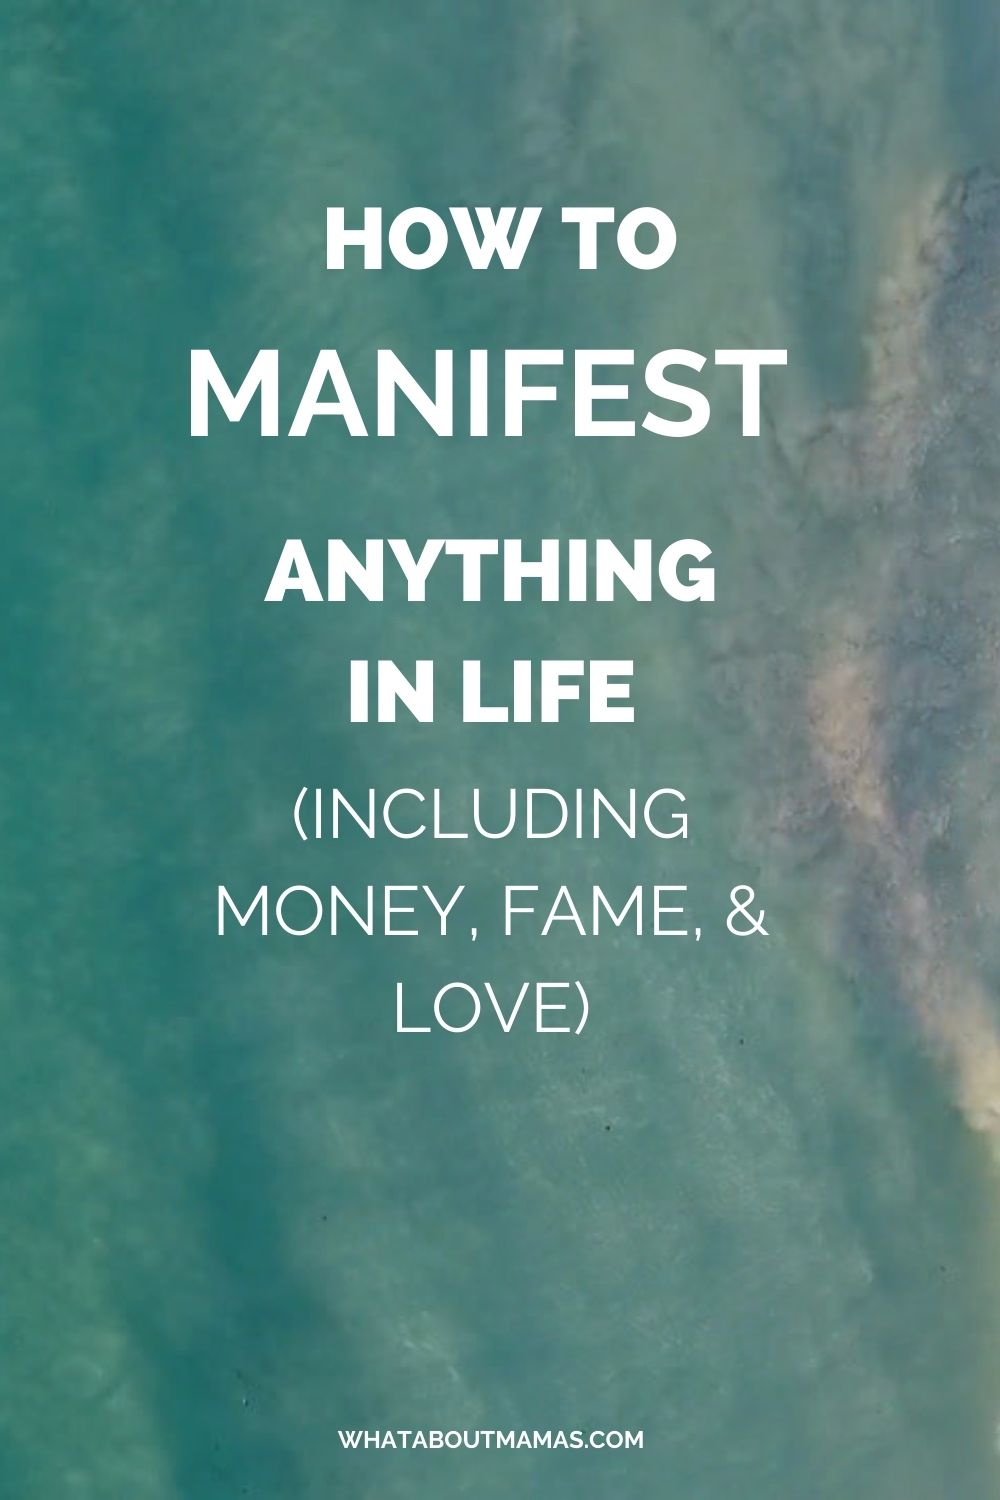 How to manifest